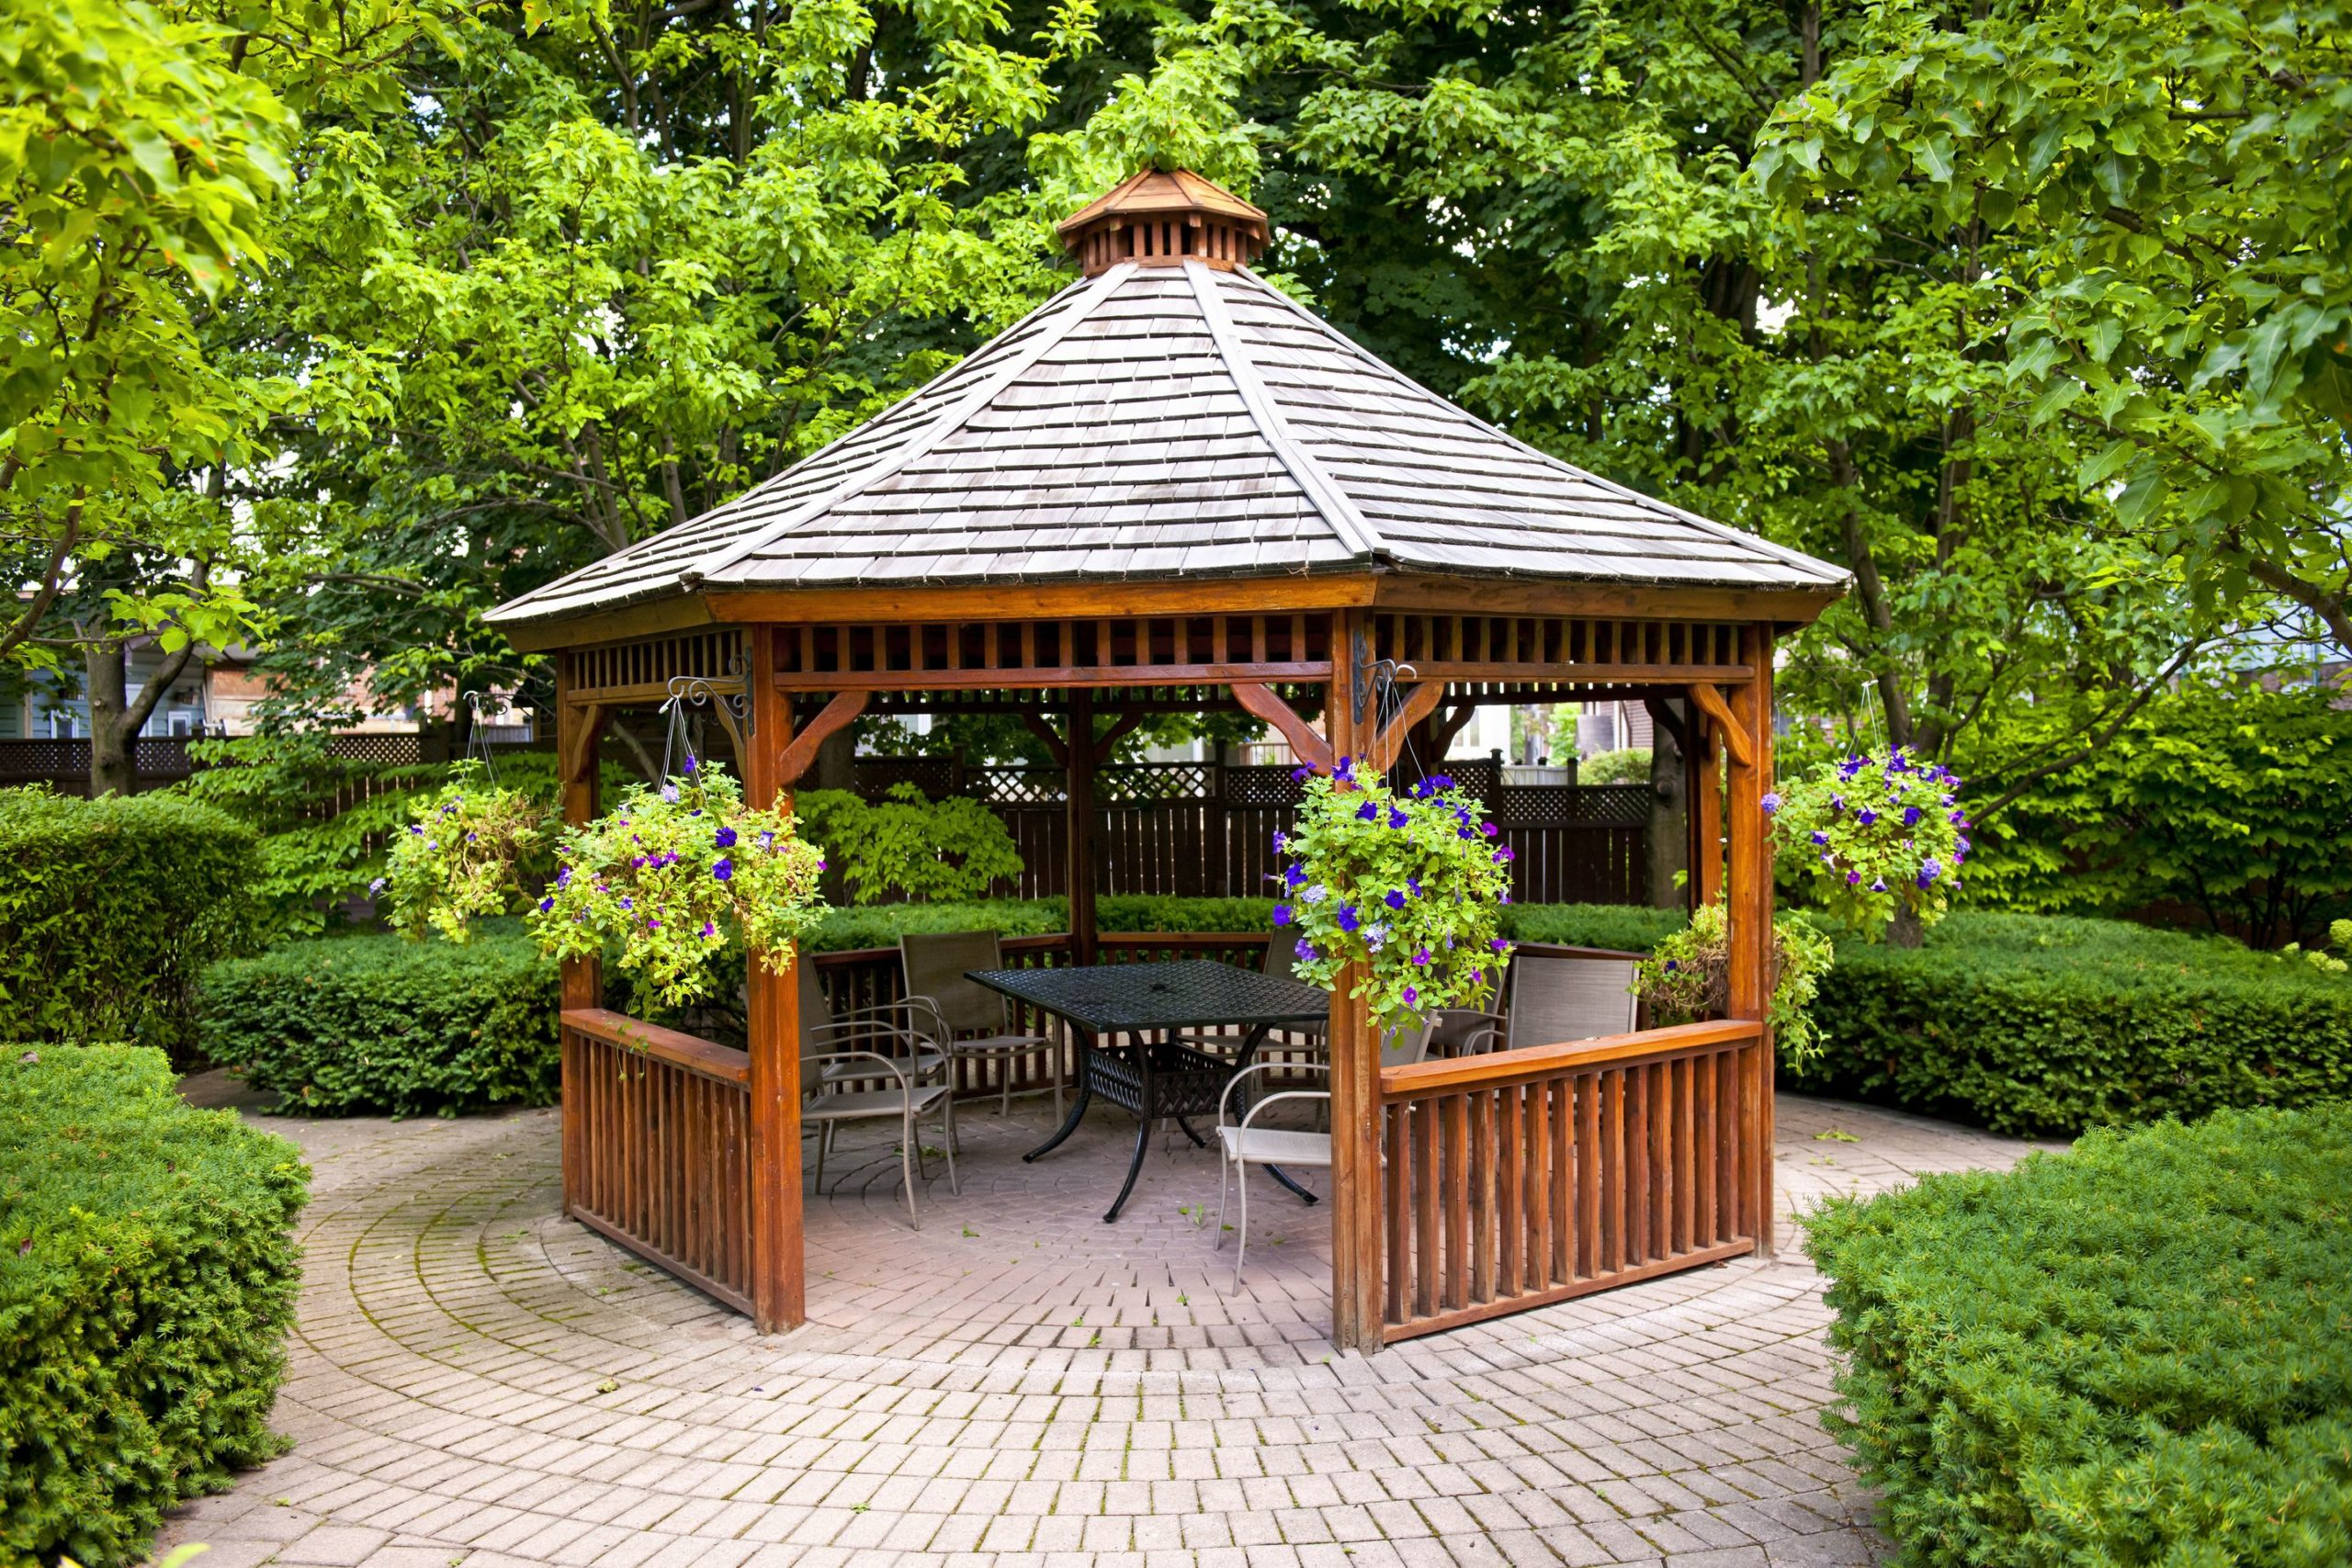 4 Reasons to Install a Gazebo in Your Yard 6